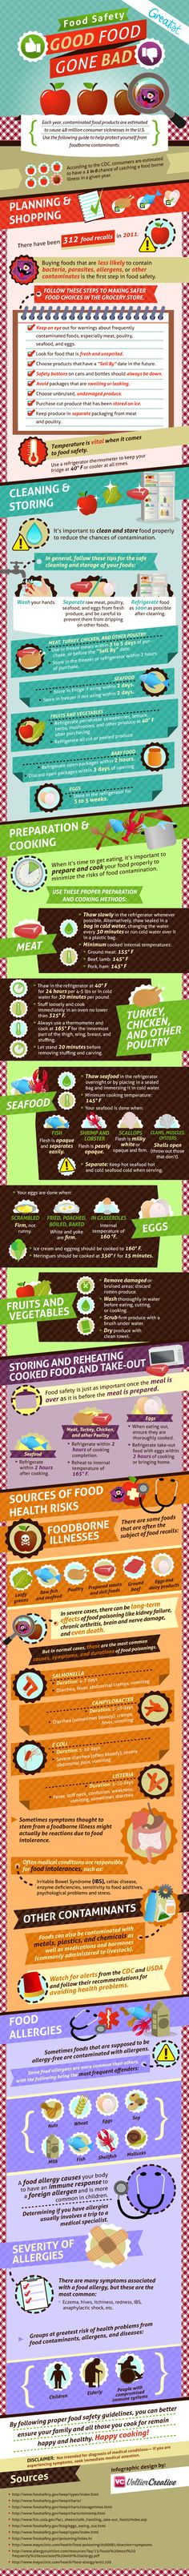 Food Safety Infographic. For more health tips and anti-aging skin products, visit www.nuvosa.com